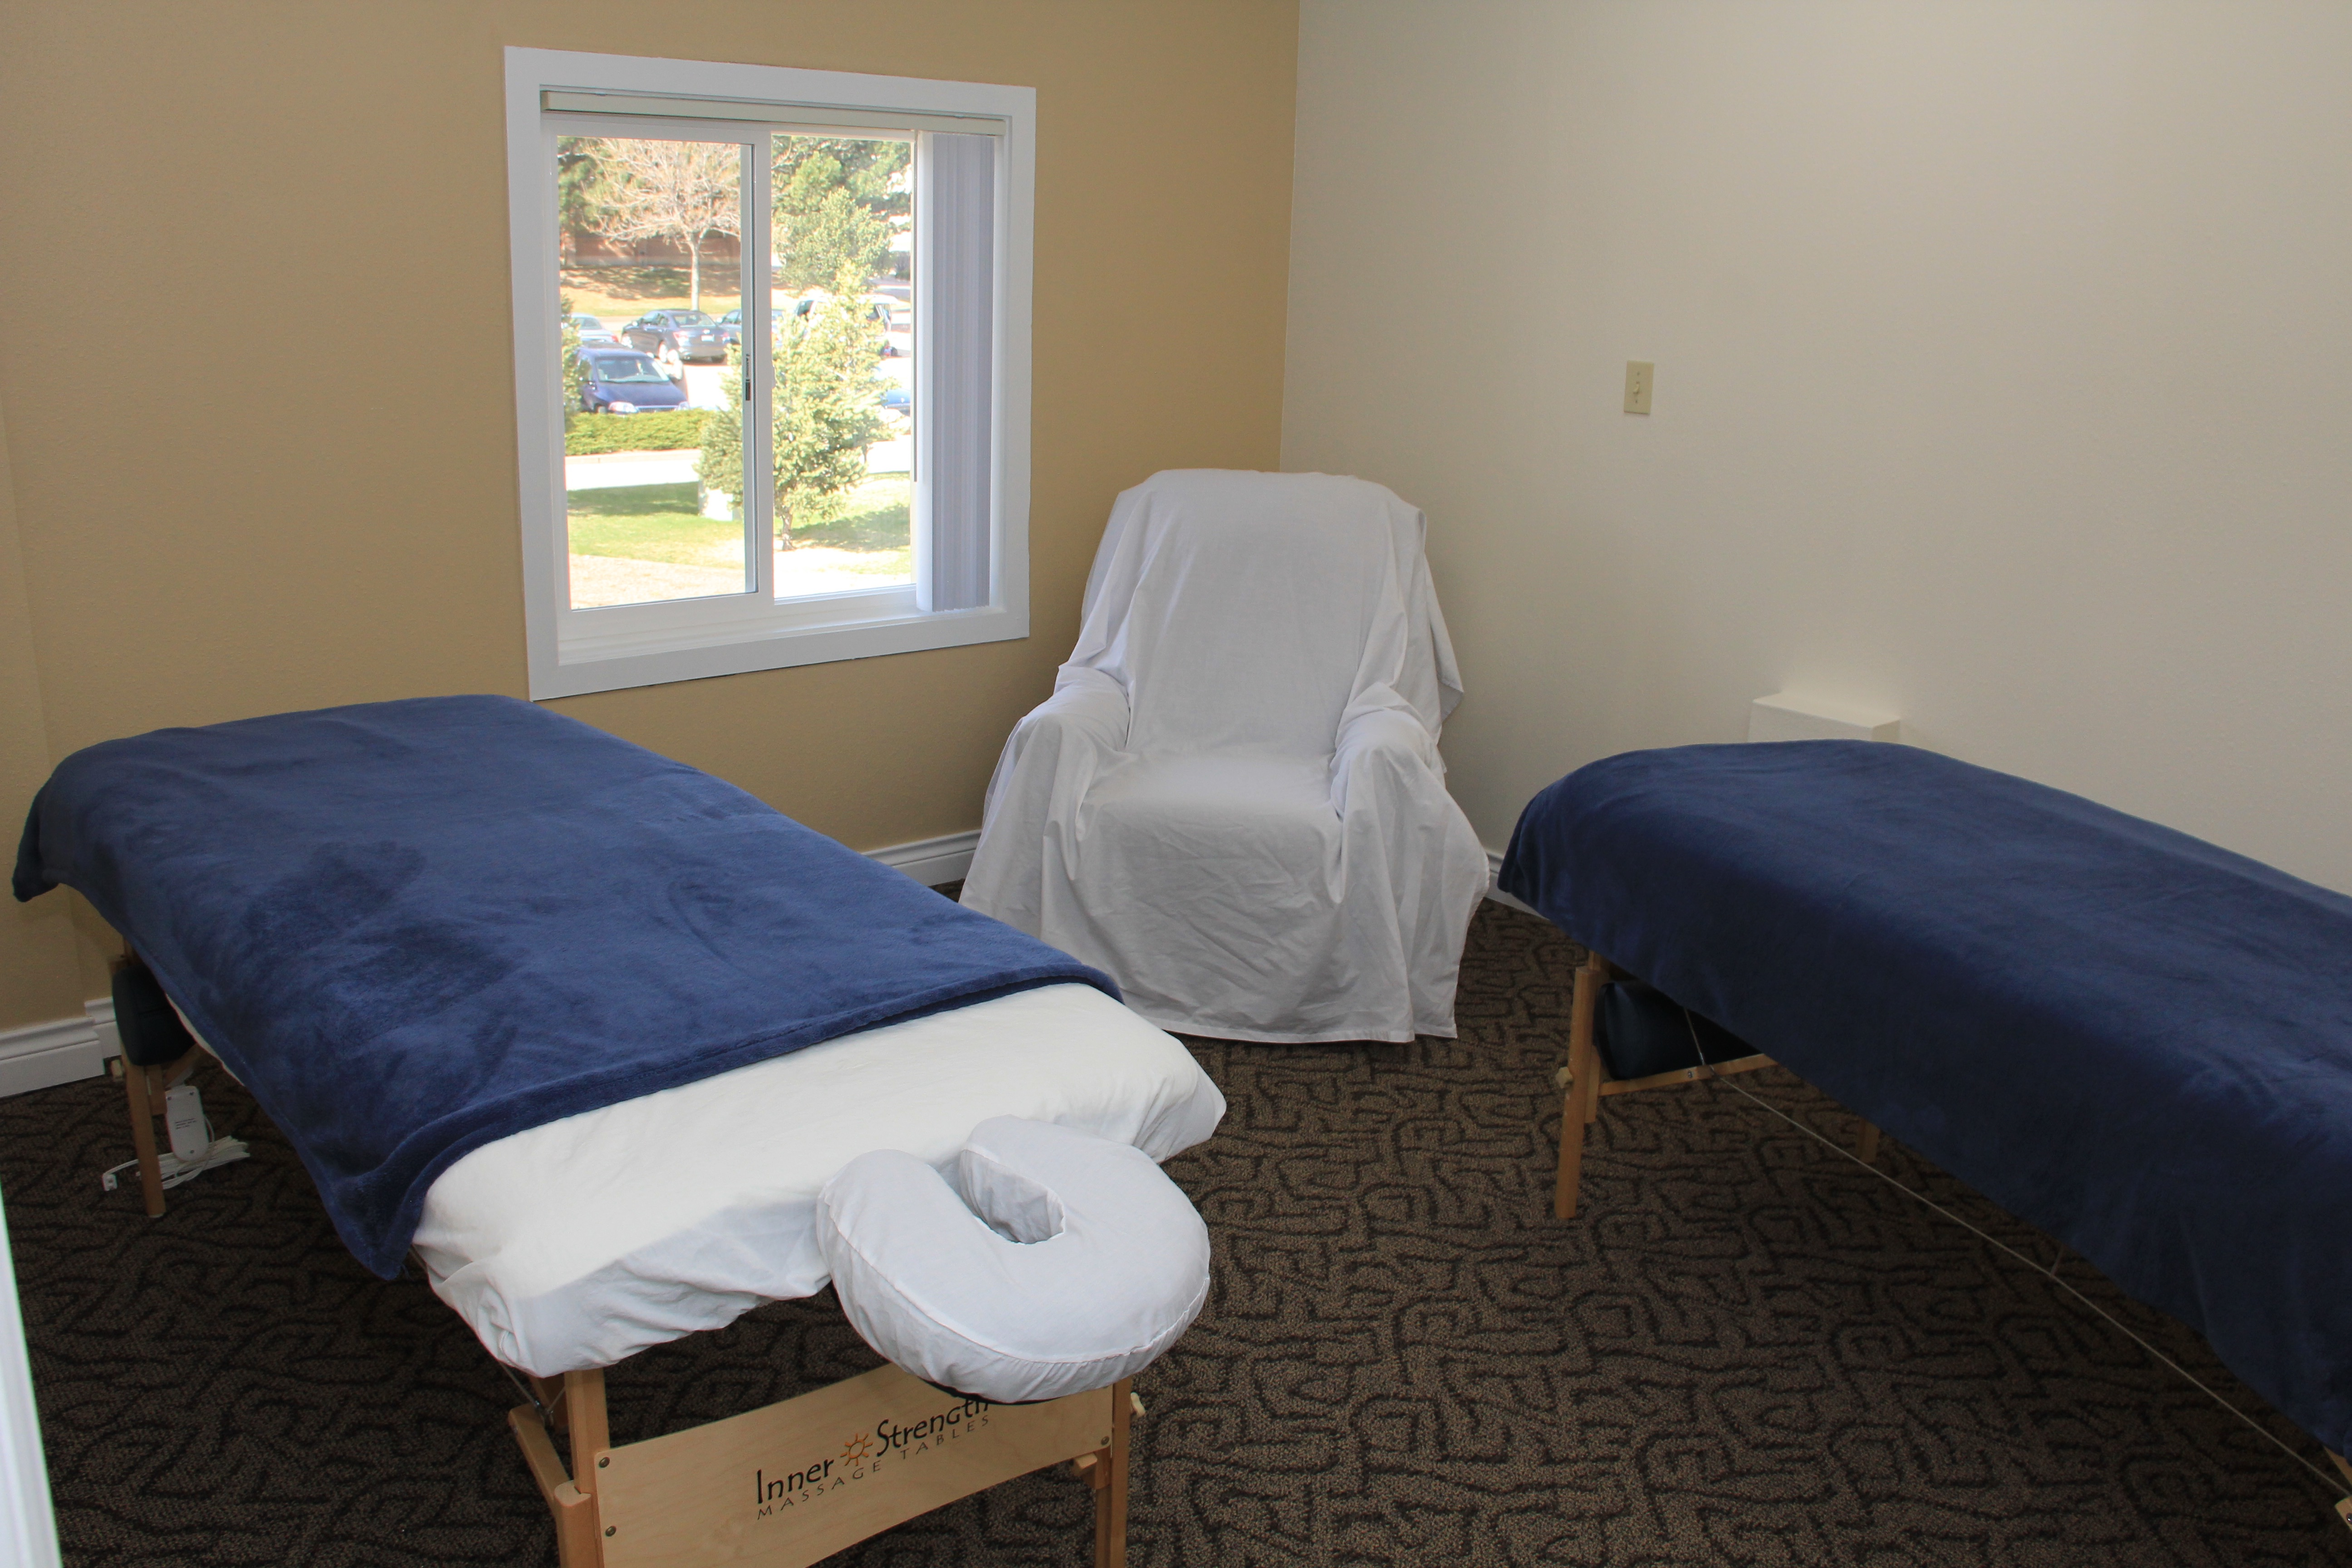 Photo tour generations acupuncture colorado springs for The family room acupuncture